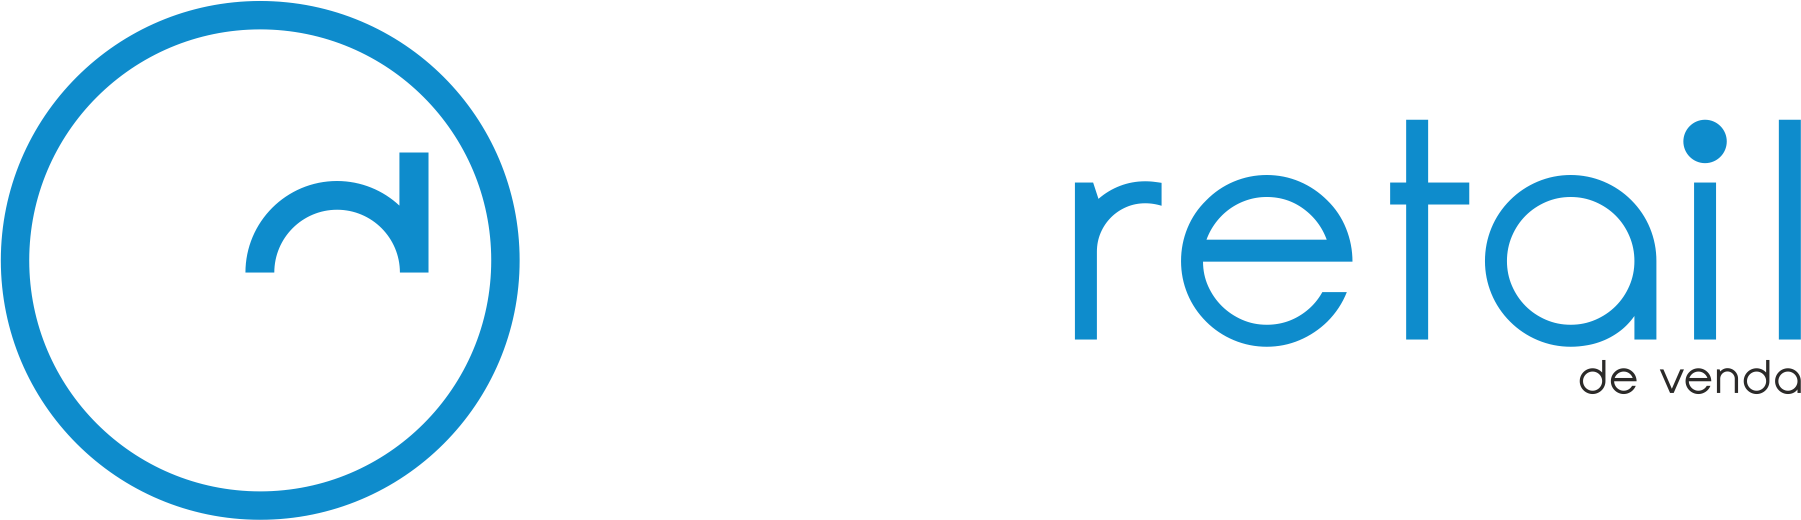 Wd Retail